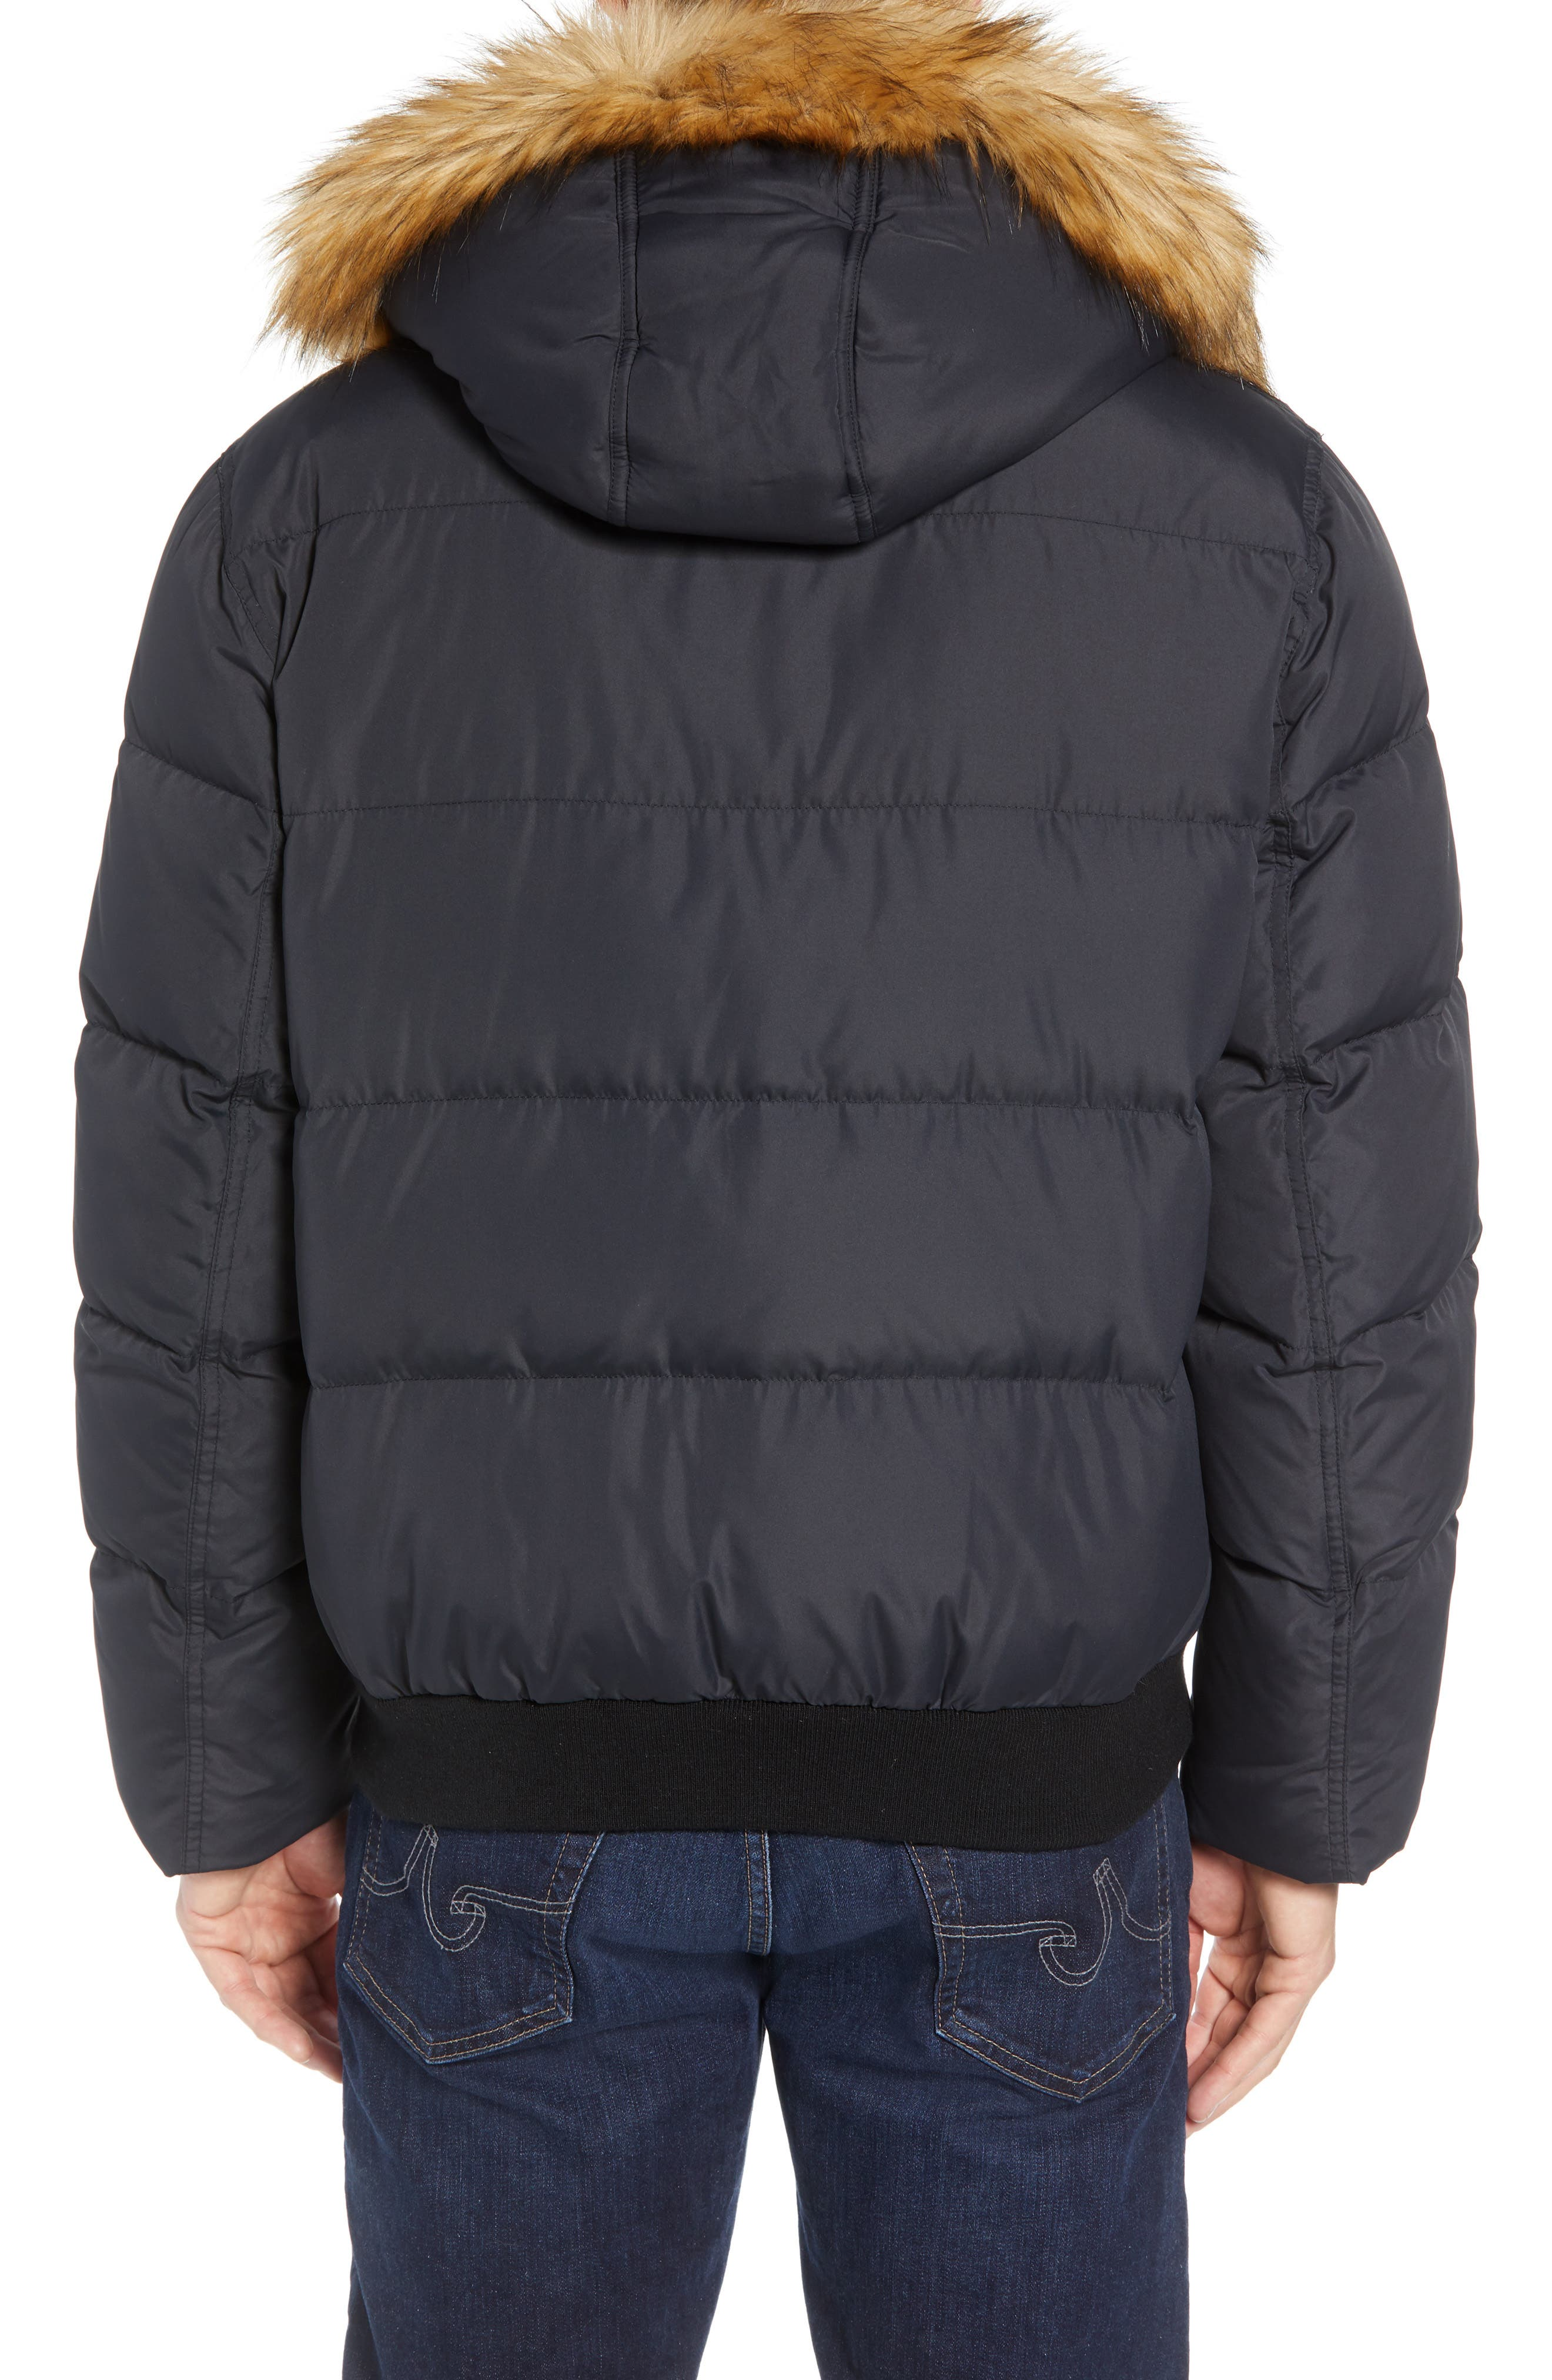 Clermont Insulated Bomber Jacket,                             Alternate thumbnail 3, color,                             BLACK